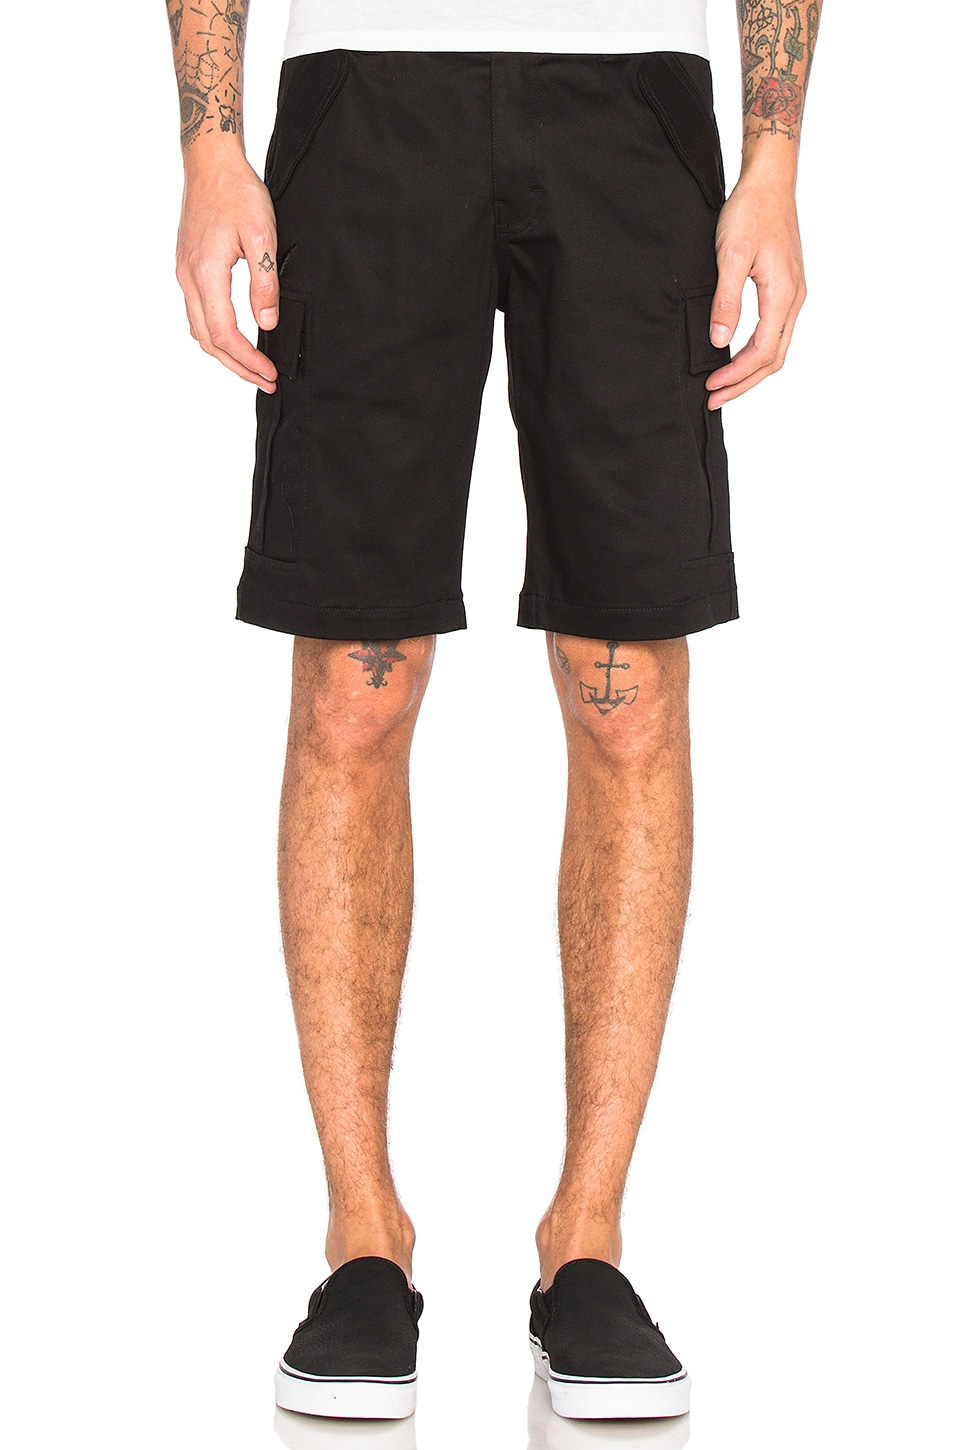 Rohan Shorts by Publish